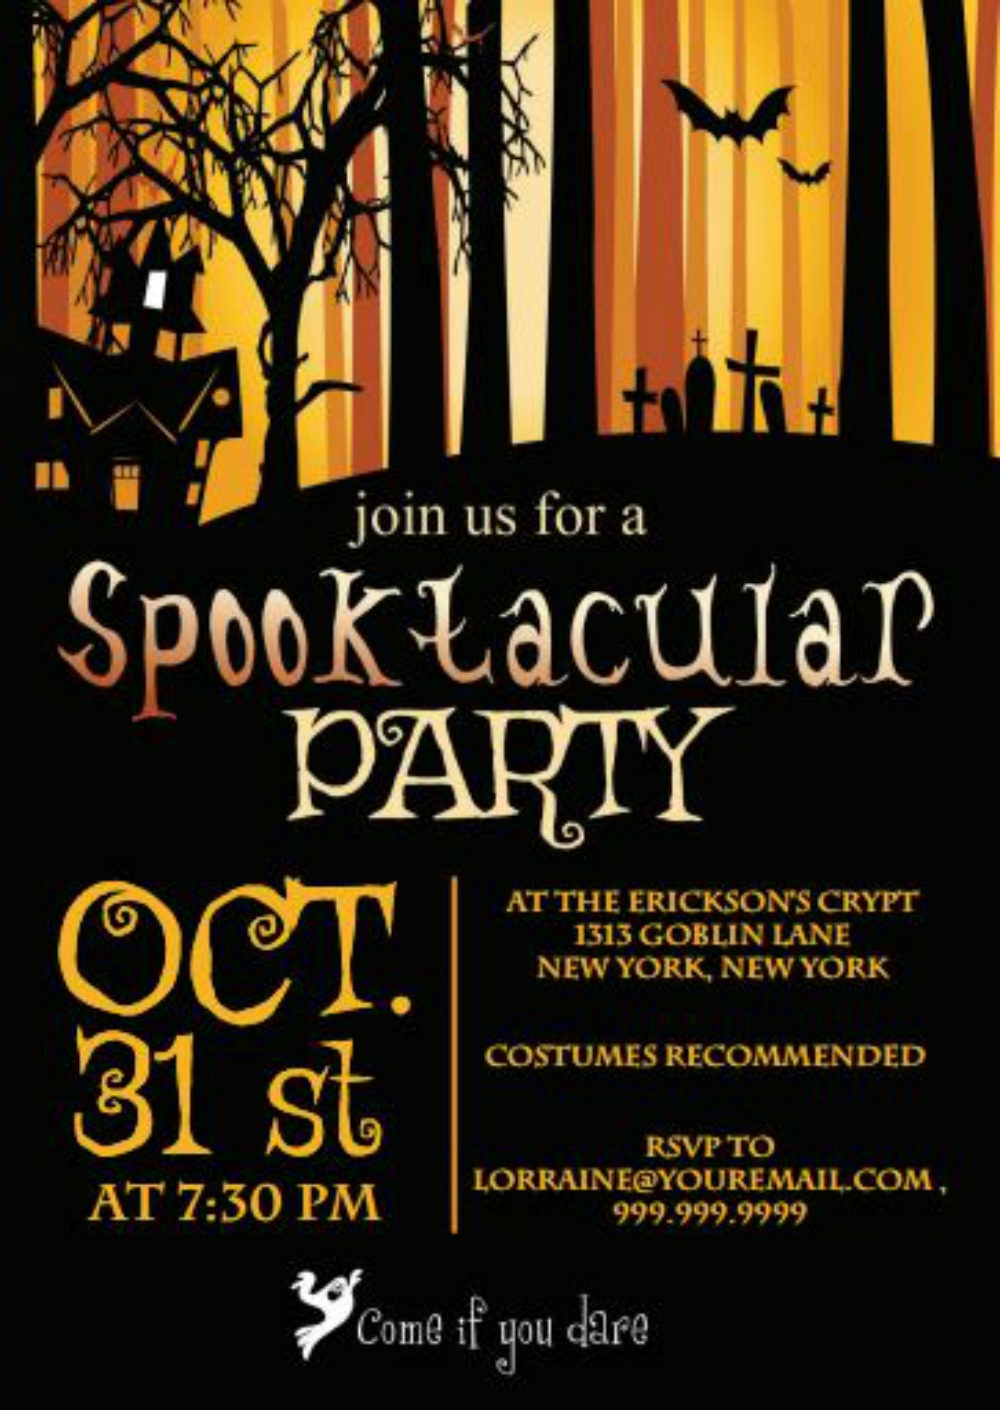 image for FREE Halloween Party Invitation